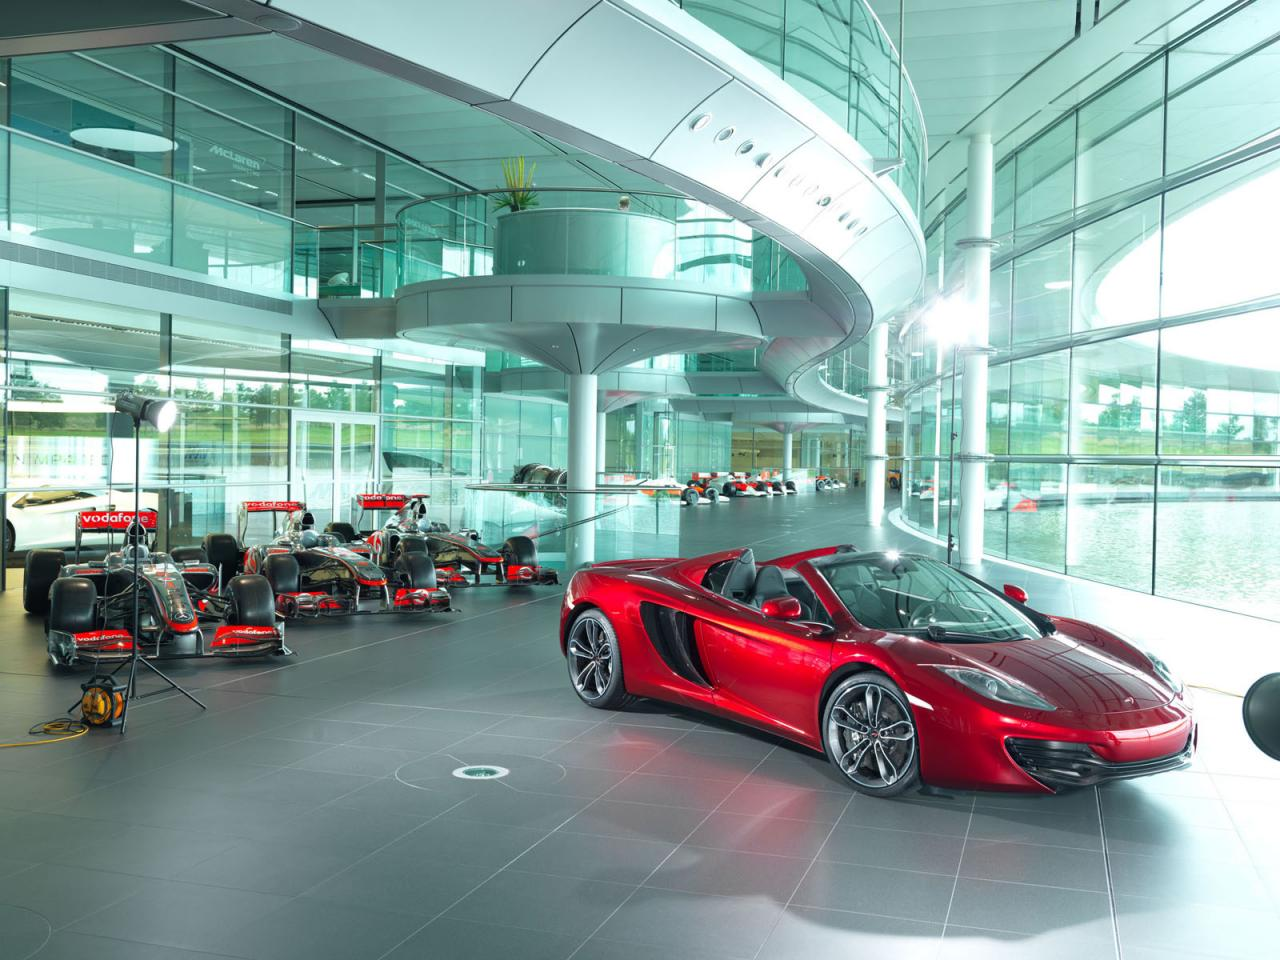 McLaren MP4-12C Neiman Marcus edition